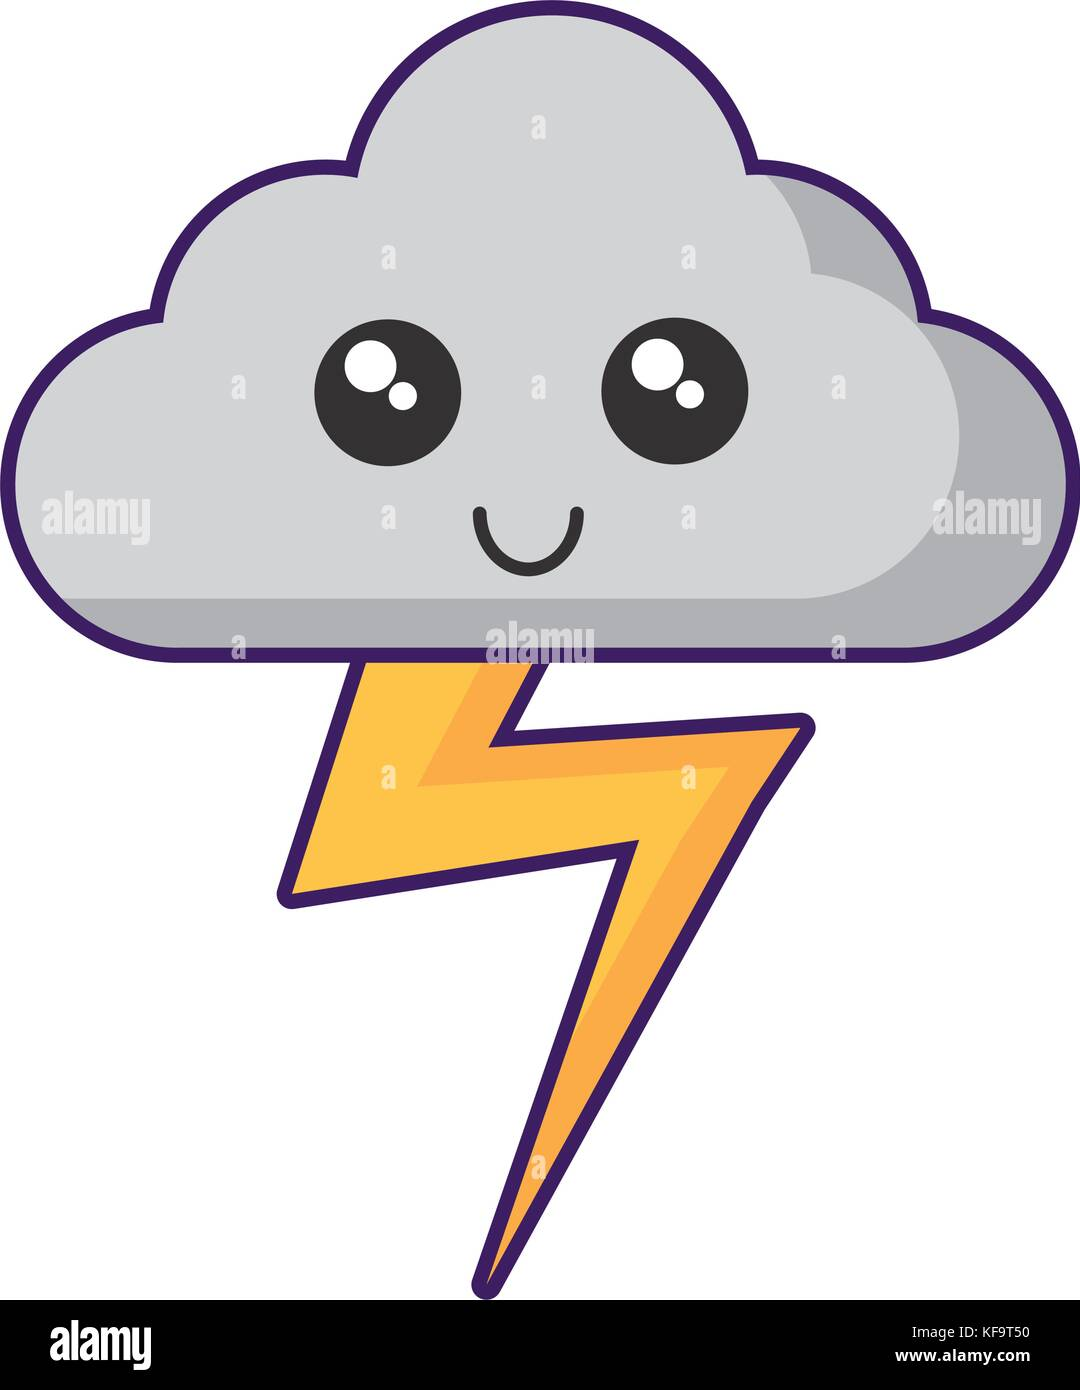 kawaii cloud and thunder icon over white background vector illustration - Stock Image